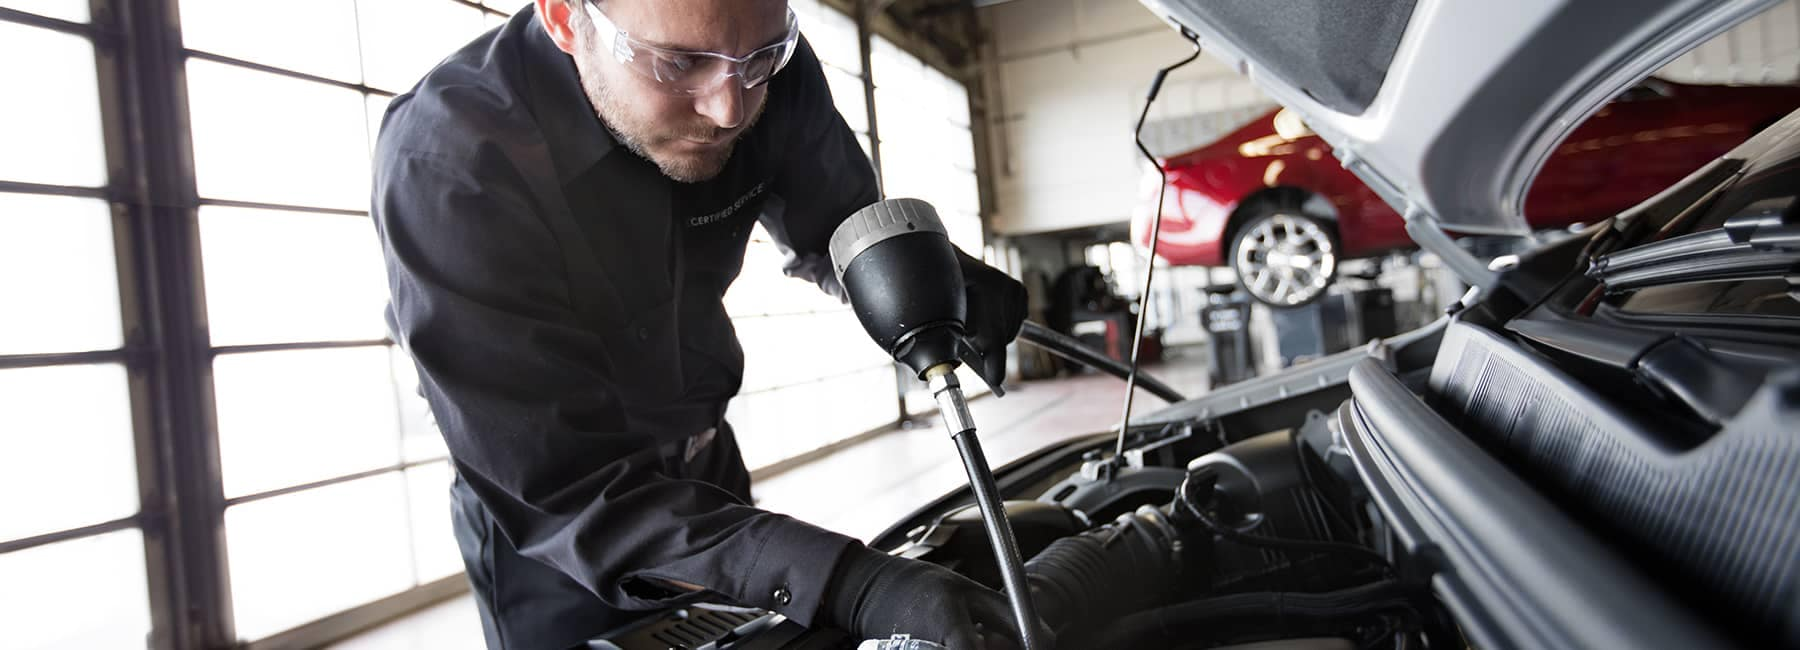 GM Certified Service Technician Working on Engine